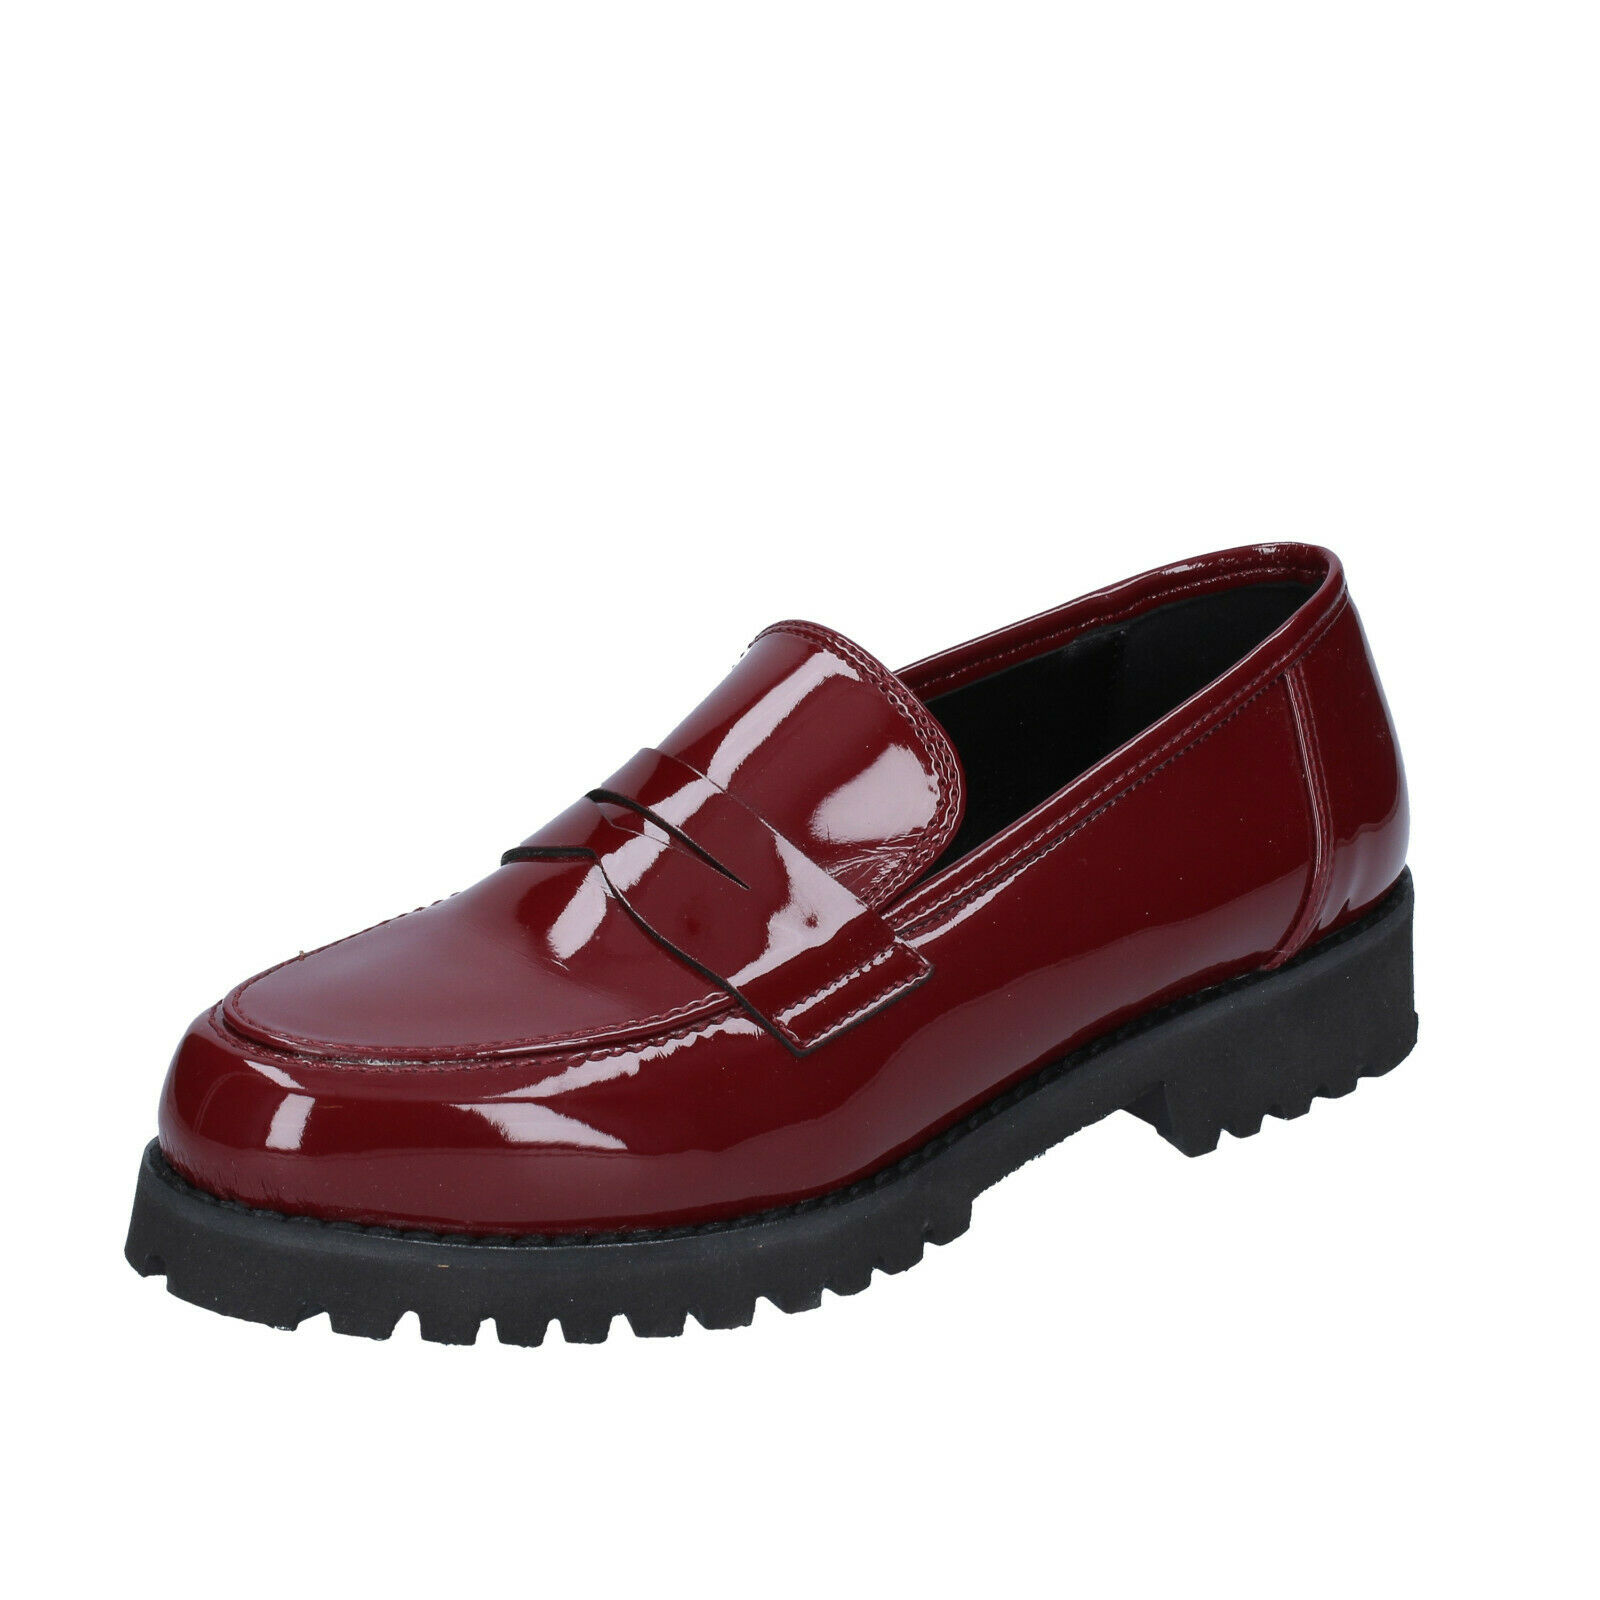 Womens shoes Olga Rubini 36 EU Moccasins Burgundy Lacquer BS840-36